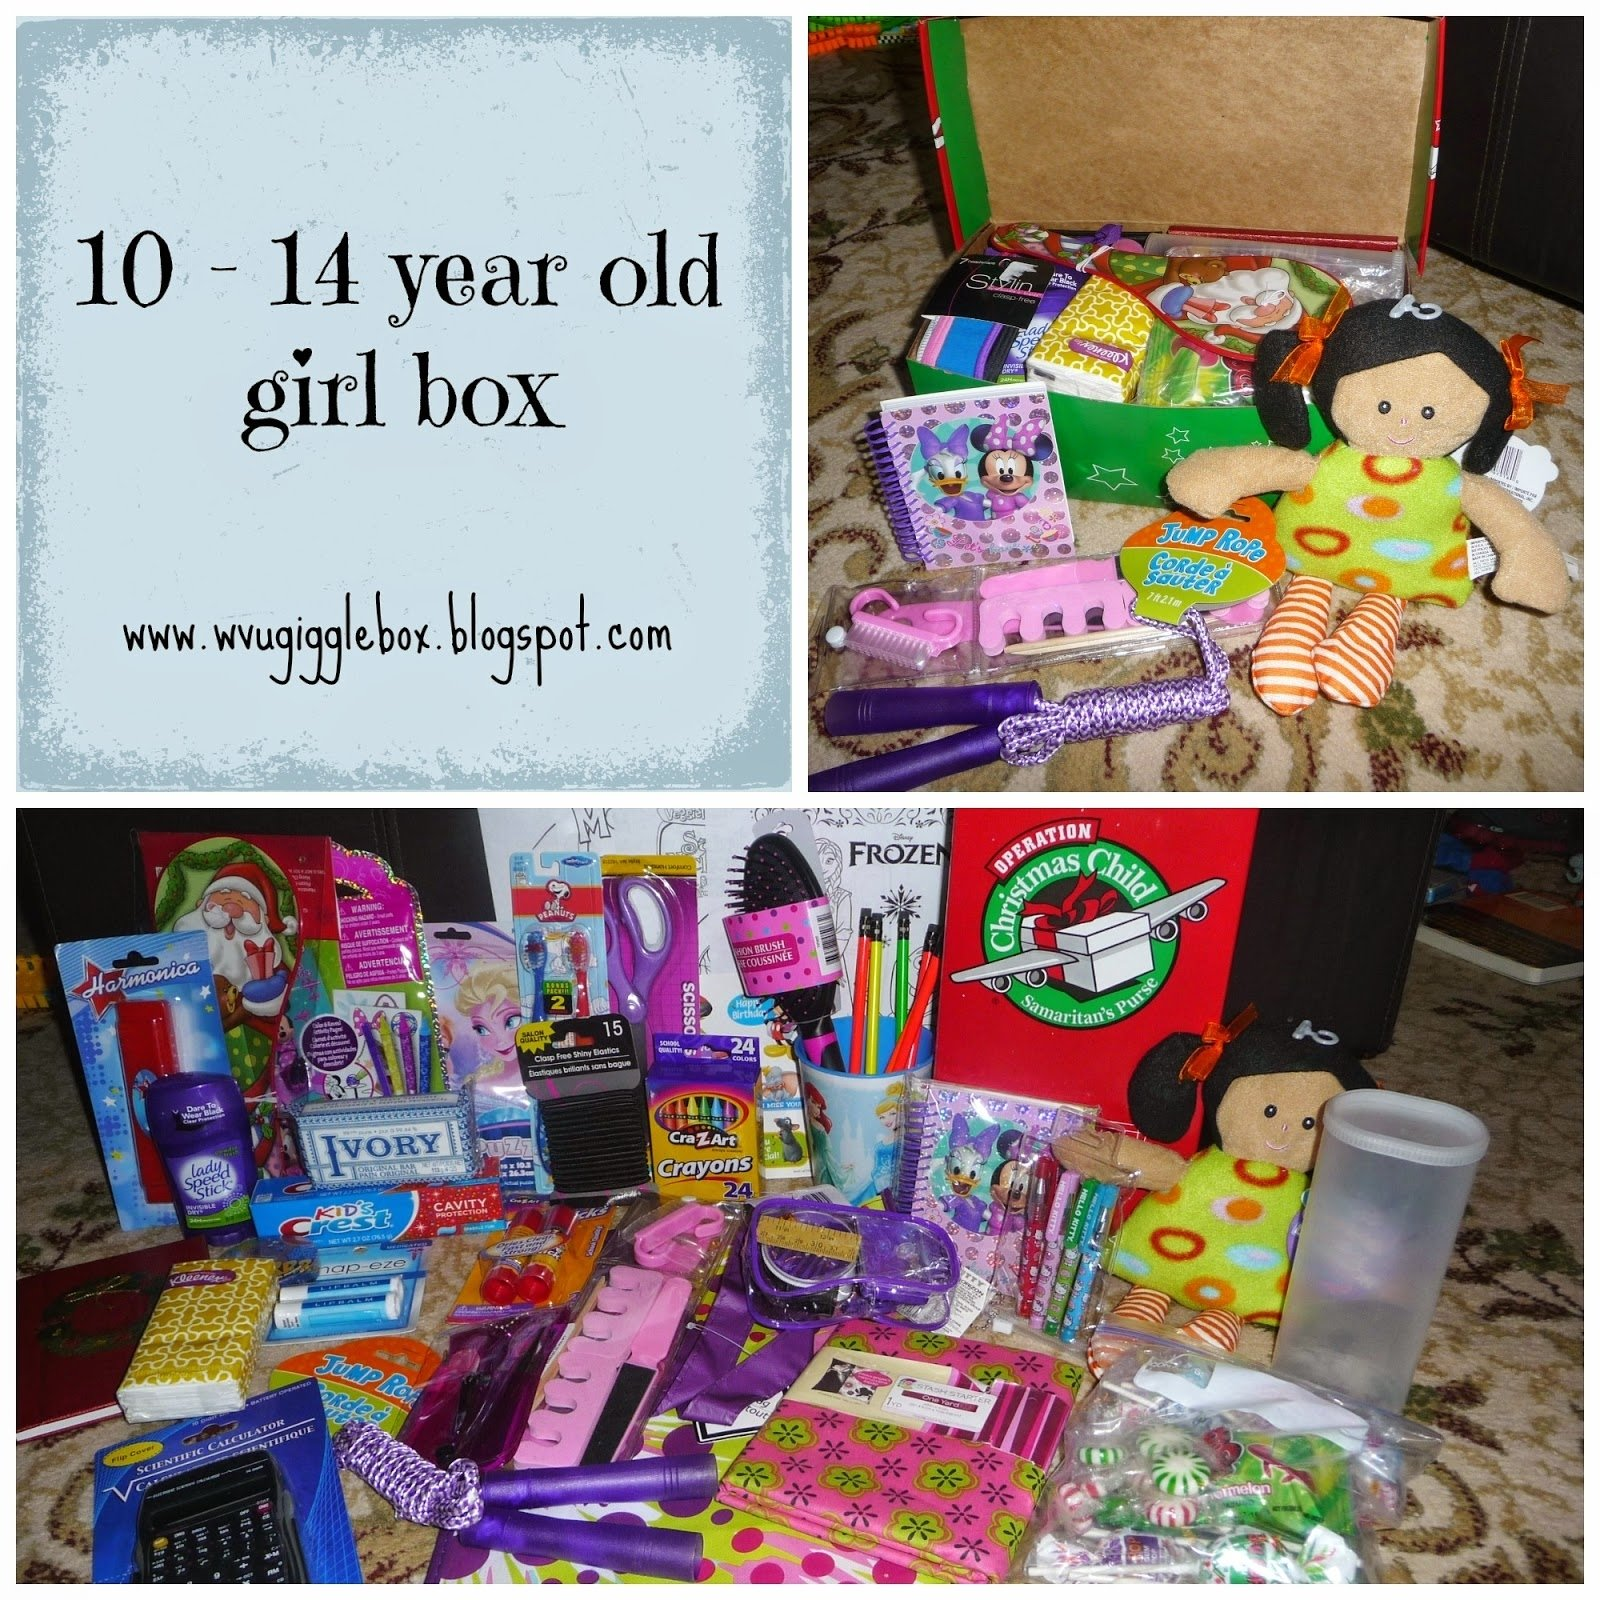 10 Great Christmas Gift Ideas For 10 Year Old Girls operation christmas child 2014 packing a 10 14 year old girl box 2020